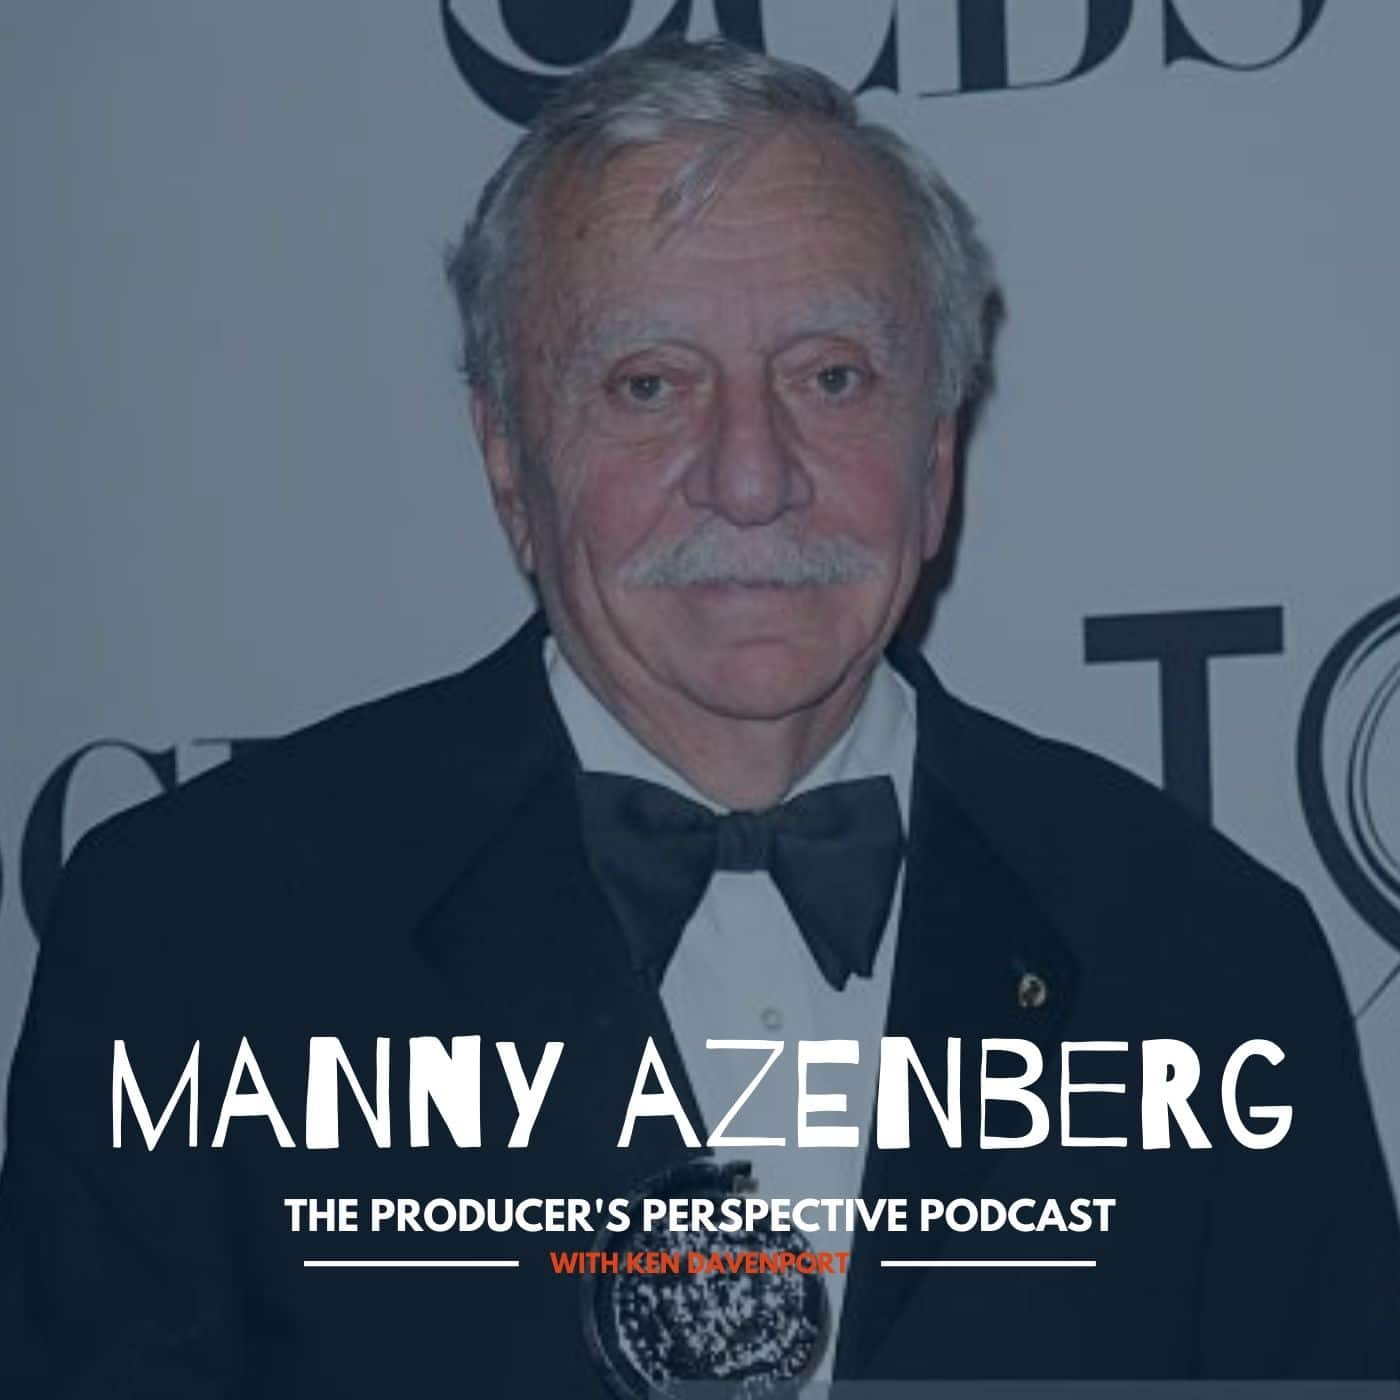 Ken Davenport's The Producer's Perspective Podcast Episode 86 - Manny Azenberg